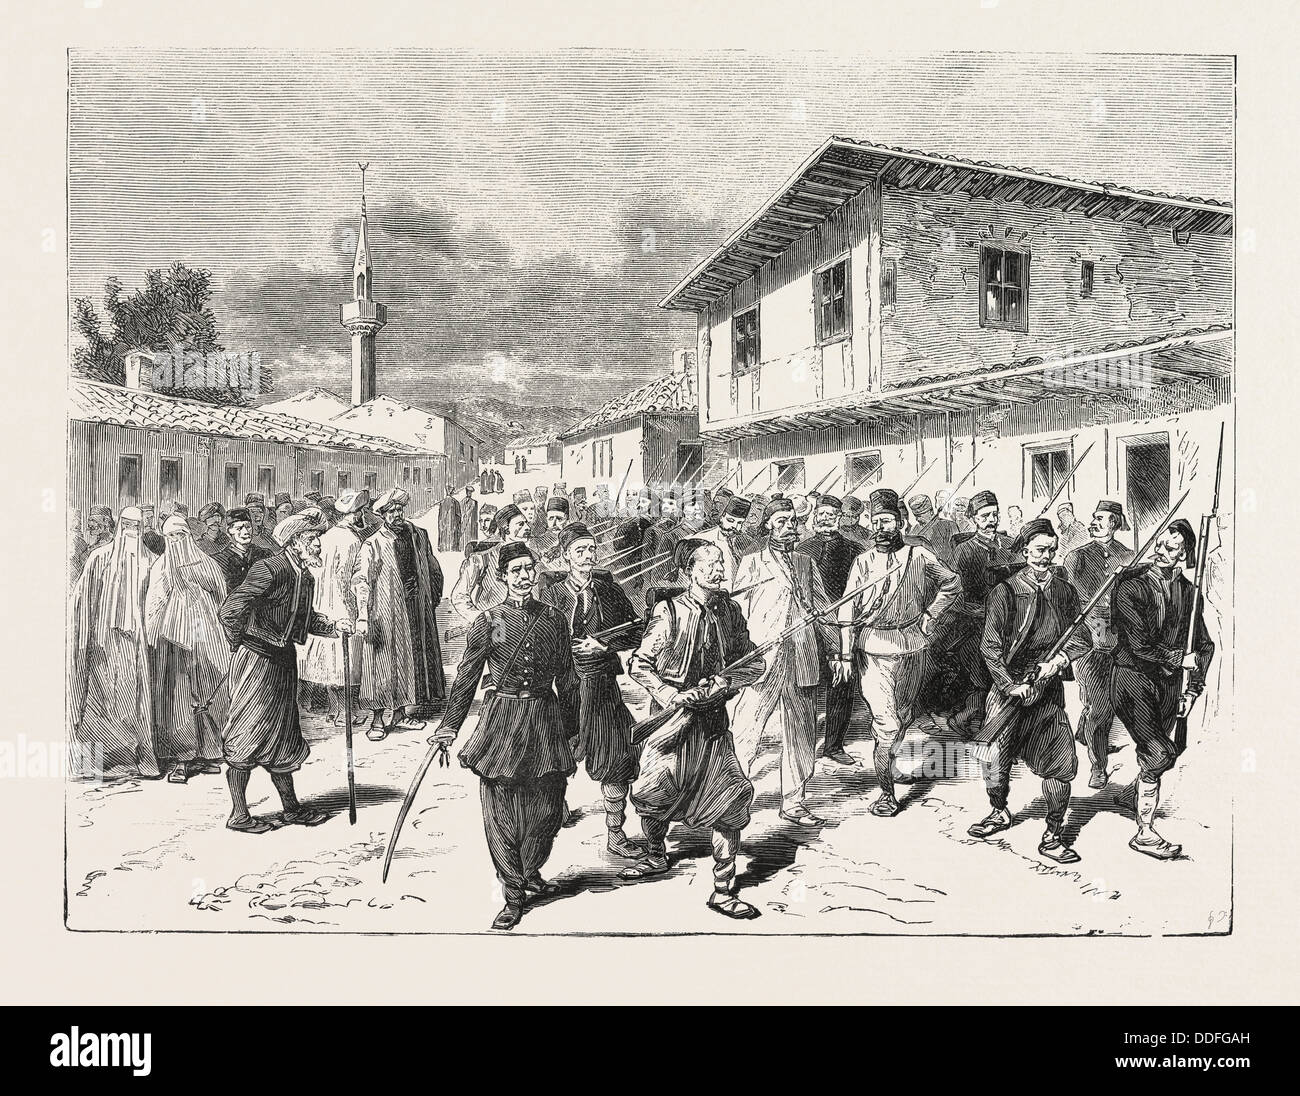 THE WAR: A PARTY OF INSURGENTS BEING CONDUCTED TO PRISON BY THE TURKS, ENGRAVING 1876 Stock Photo